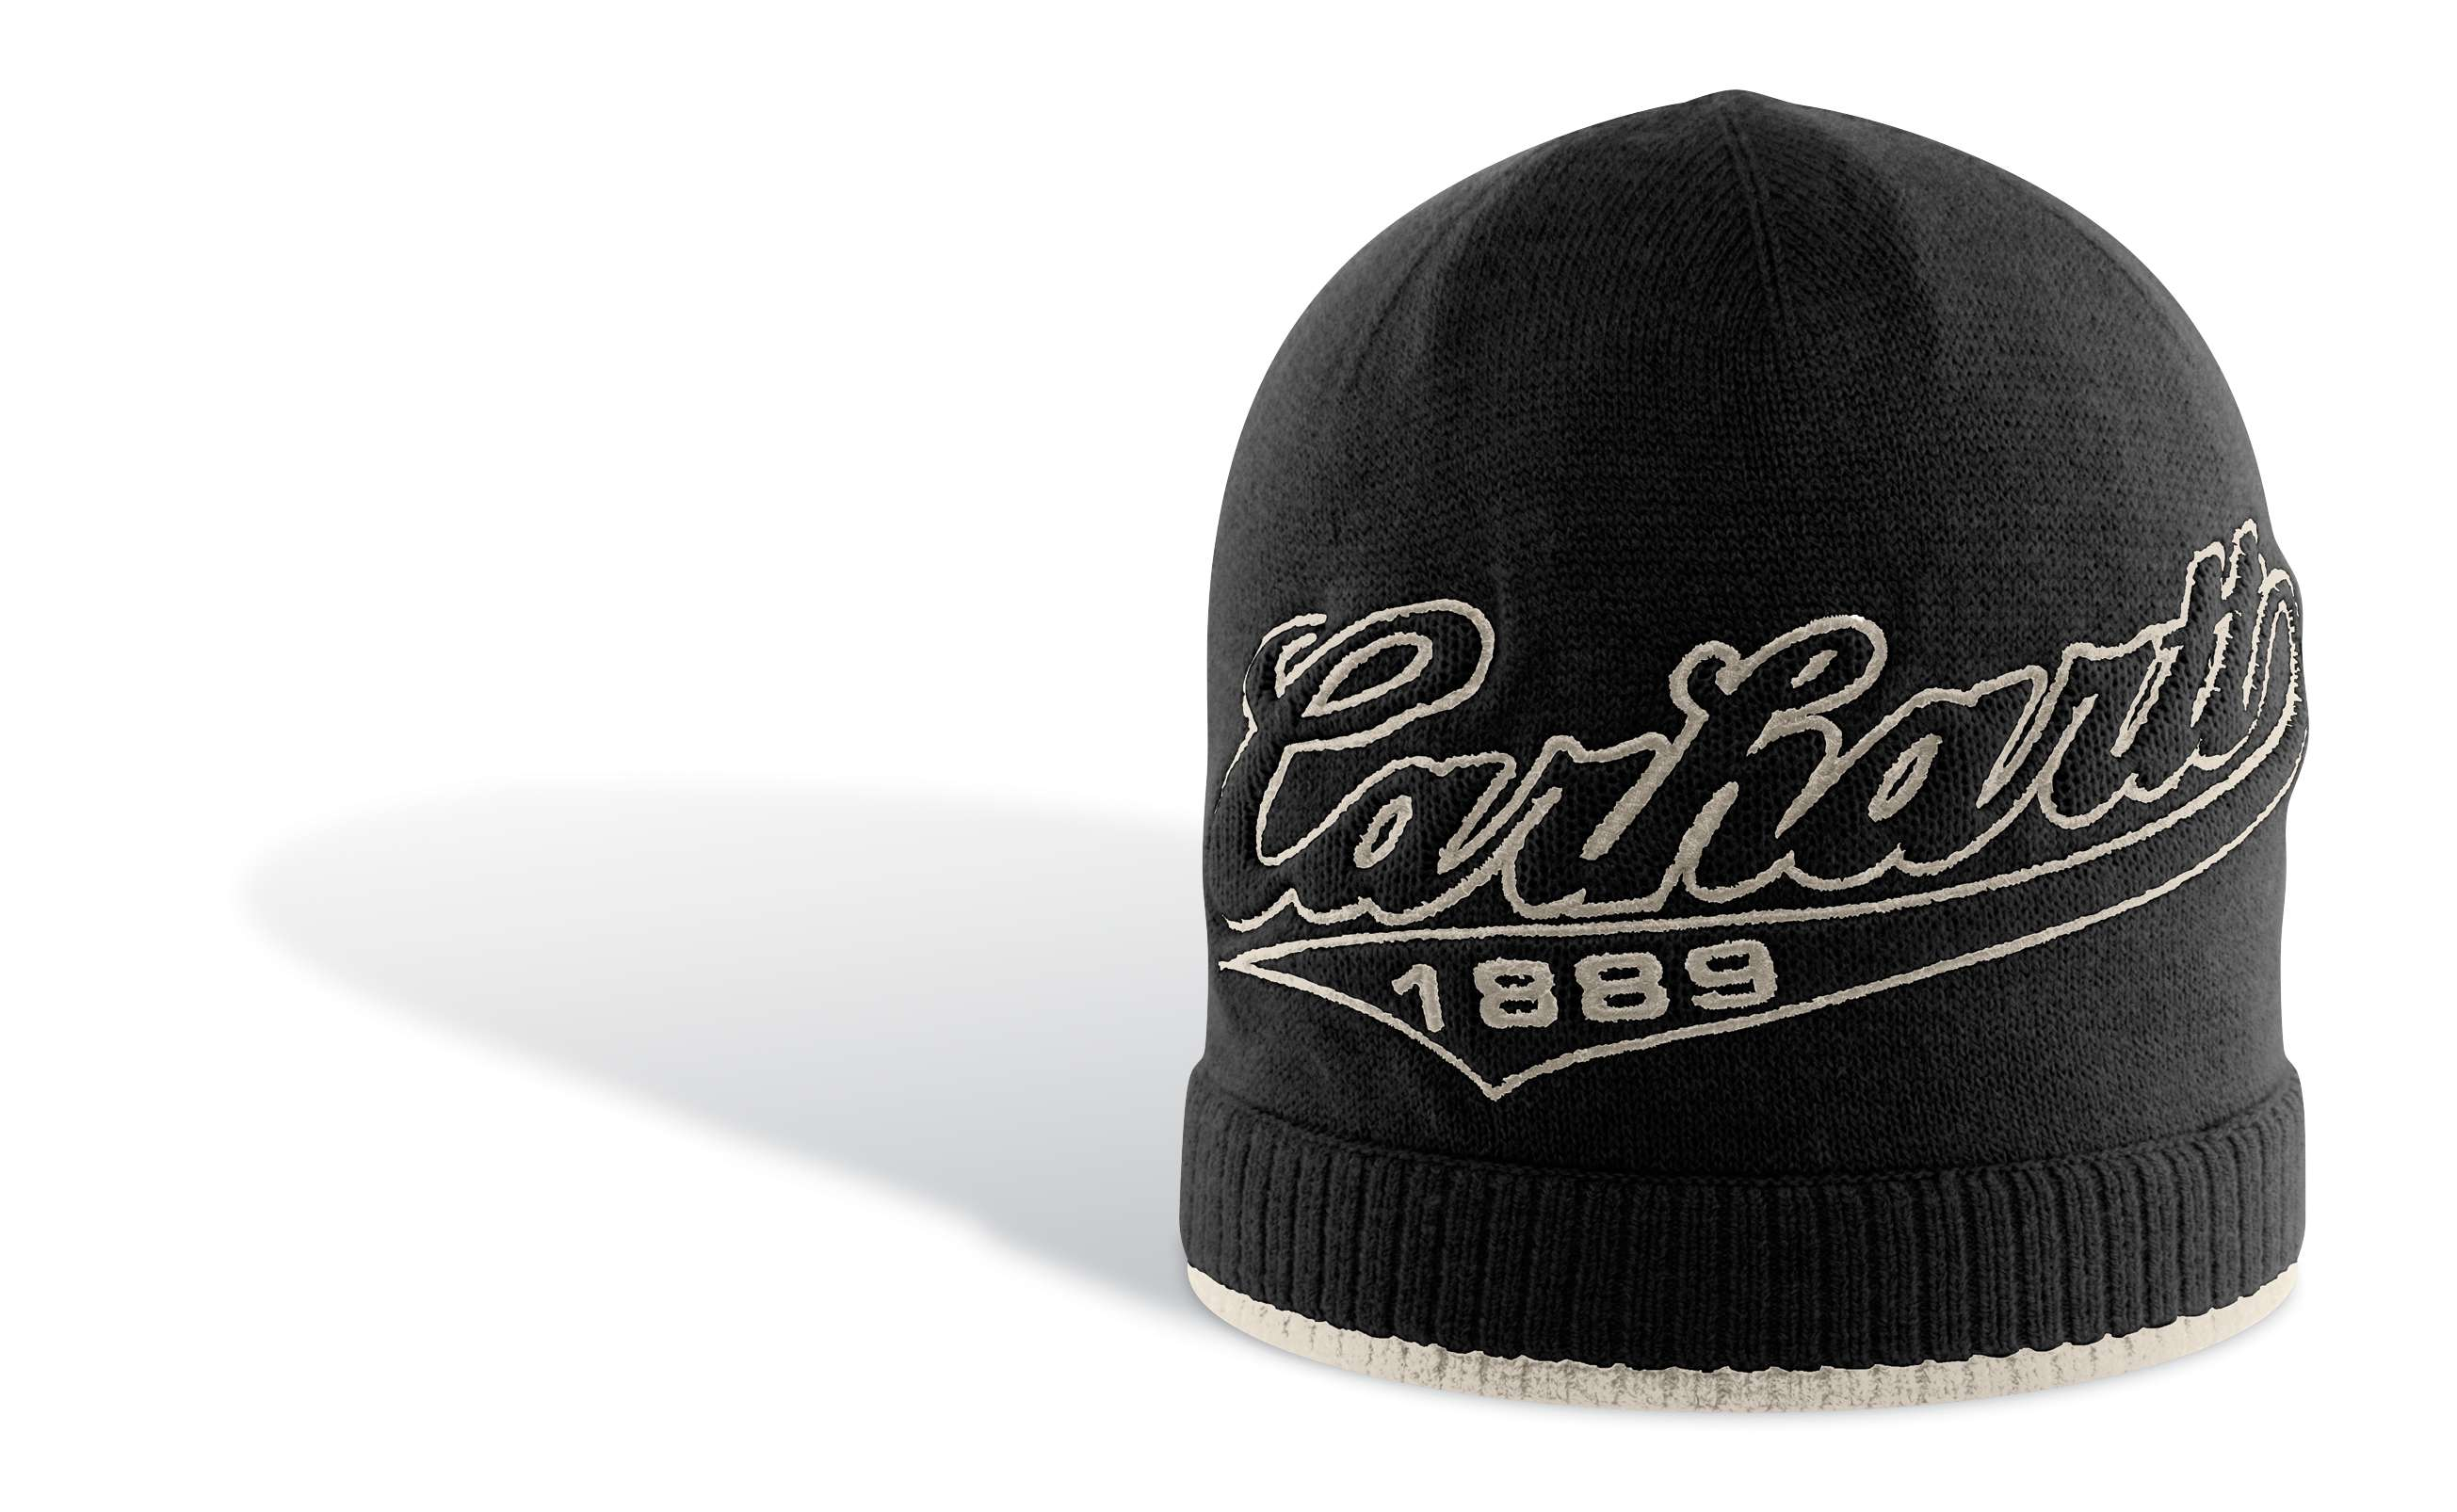 Carhartt Series 1889 Script Knit Hat